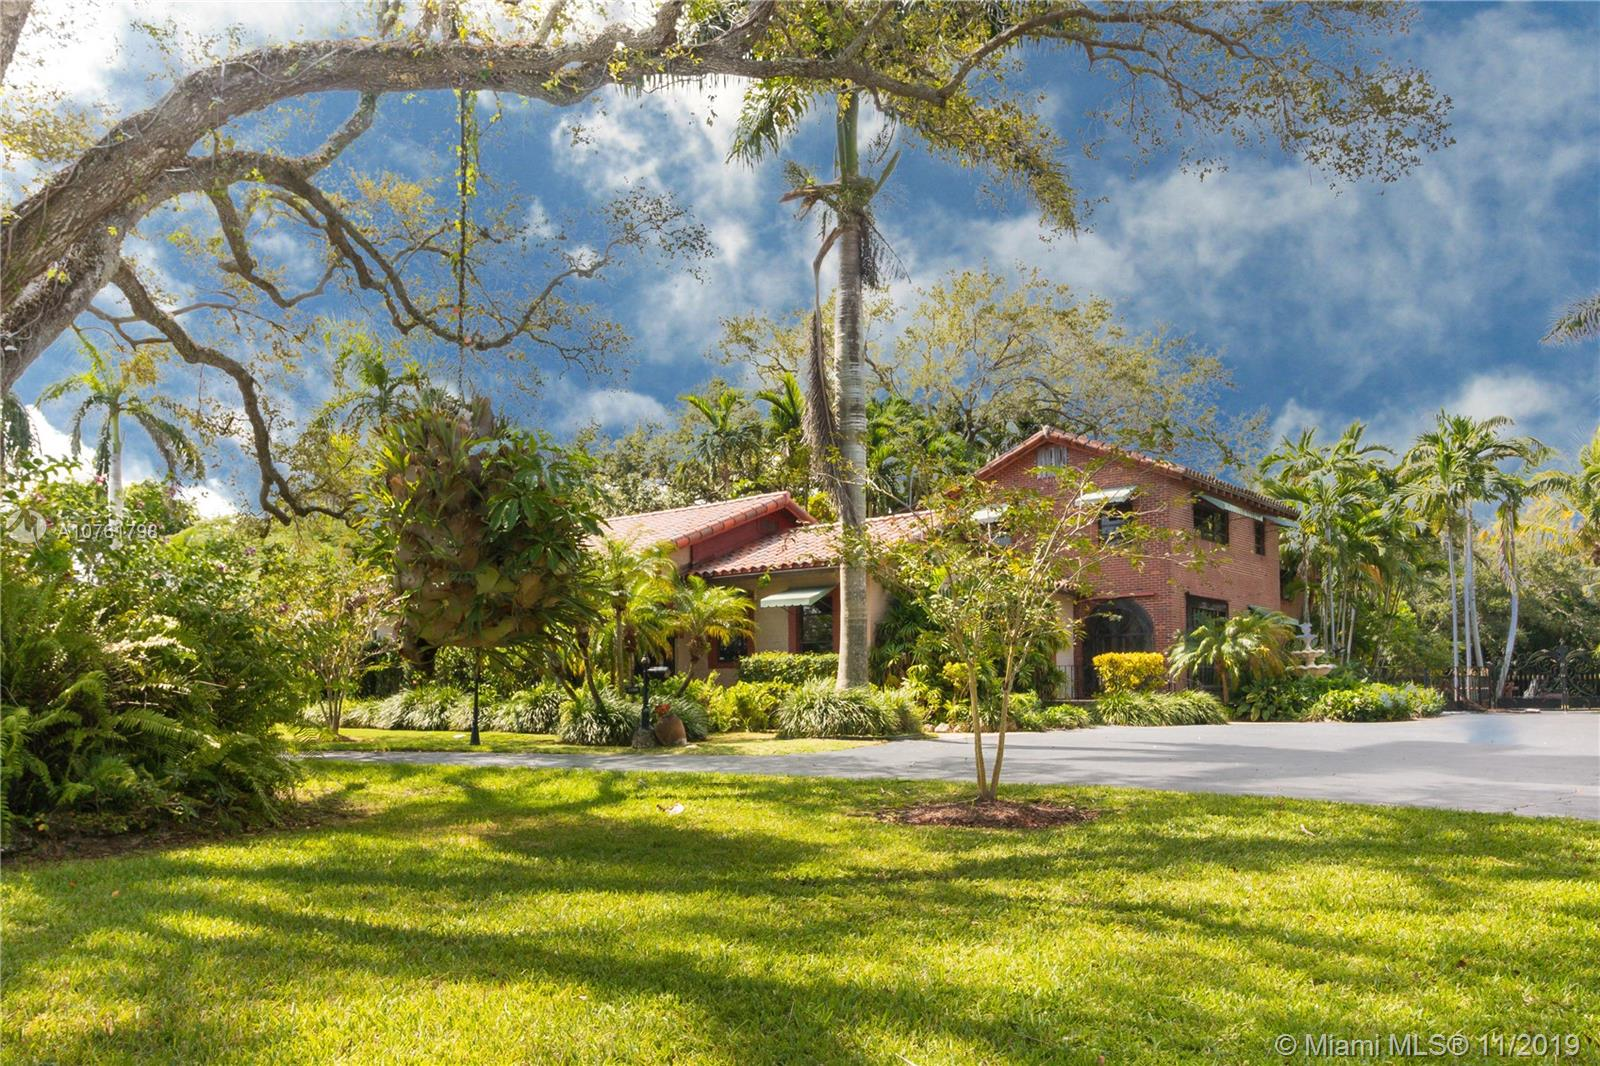 11220 SW 57th Ct, Kendall, Florida